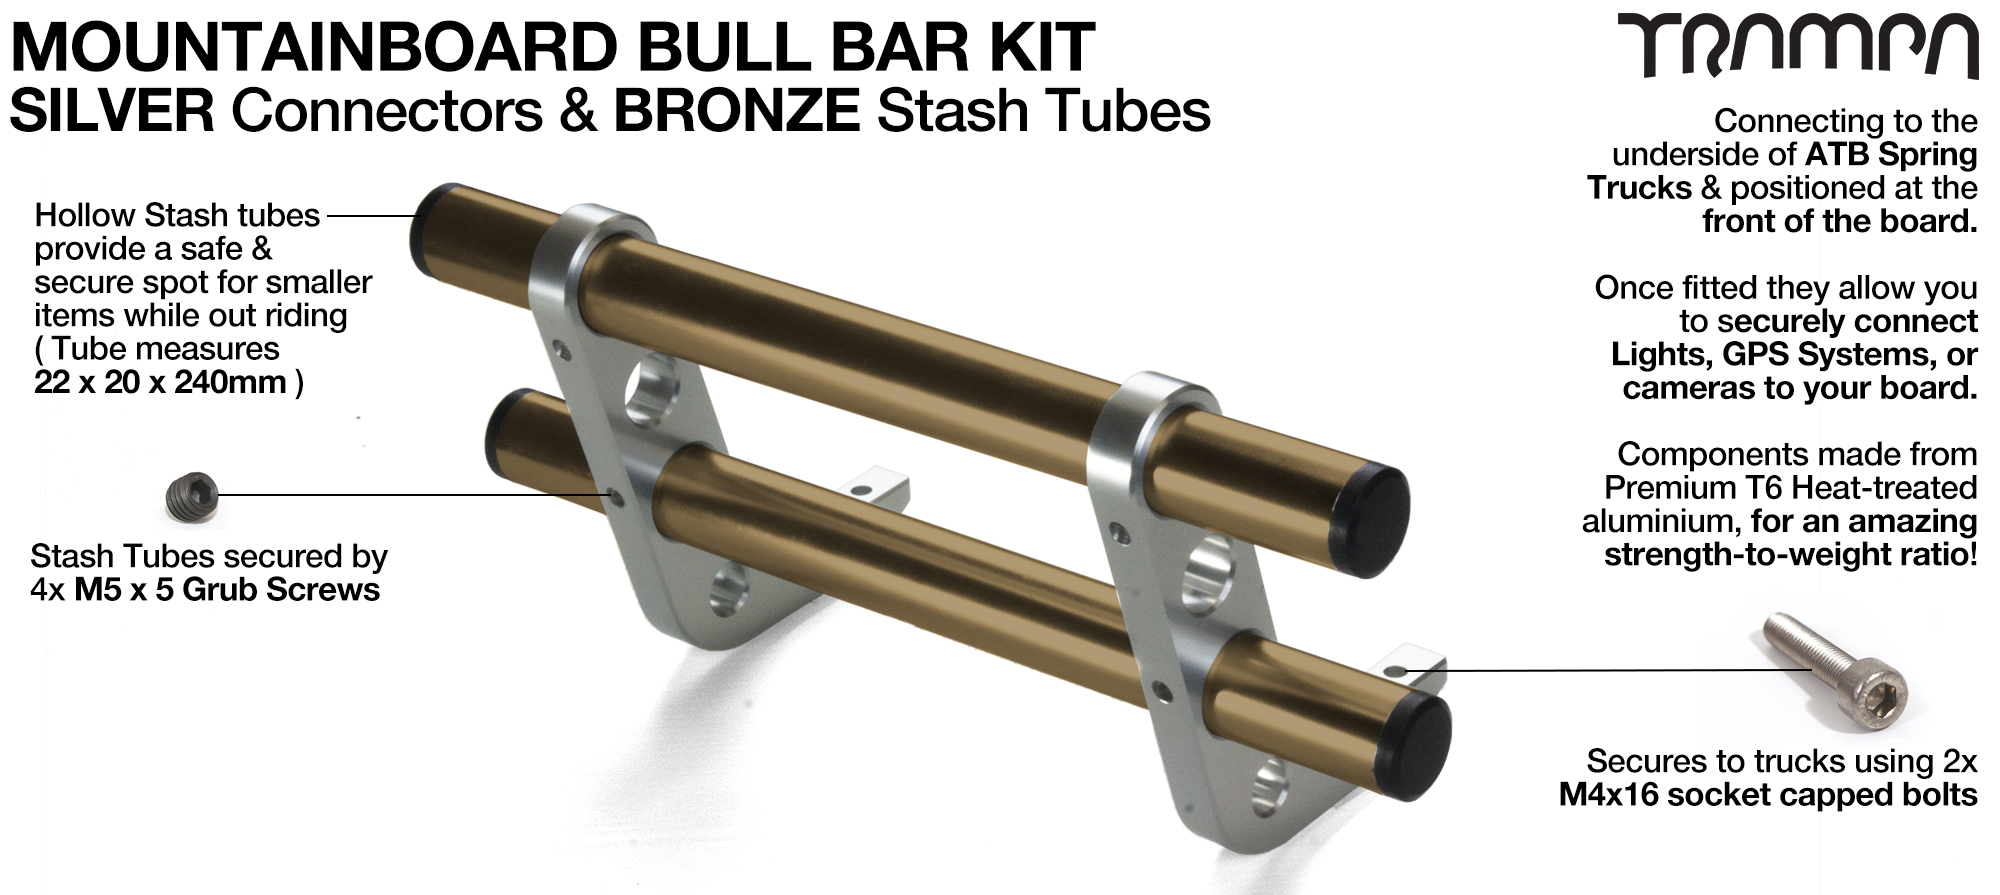 SILVER Uprights & BRONZE Crossbar BULL BARS for MOUNTAINBOARDS T6 Heat Treated CNC'd Aluminium Uprights, with Hollow Aluminium Stash Tubes with Rubber end bungs